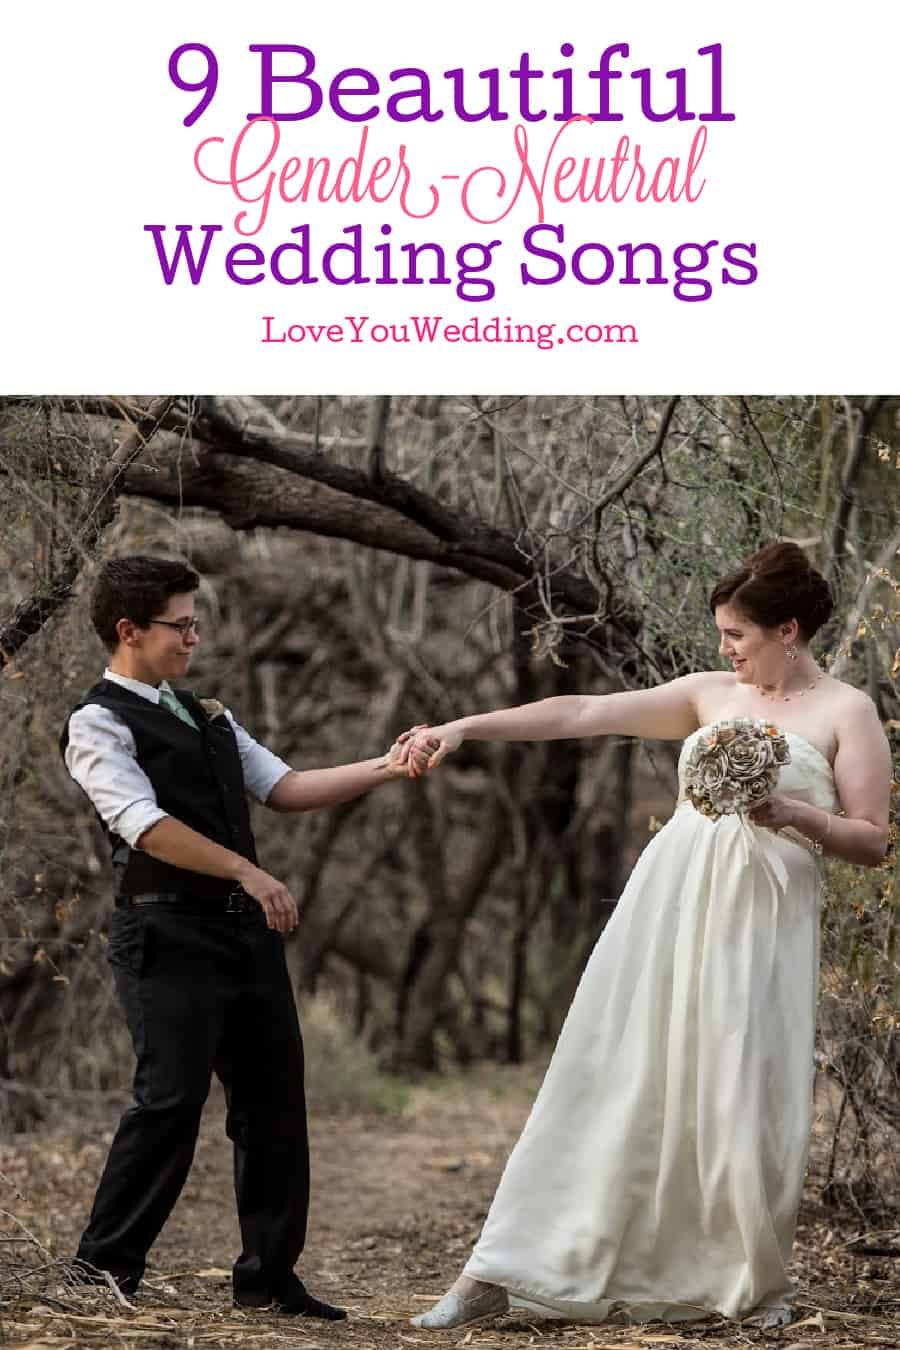 These 9 gender-neutral wedding songs beautifully express the depth of your feelings for each other! Check them out!